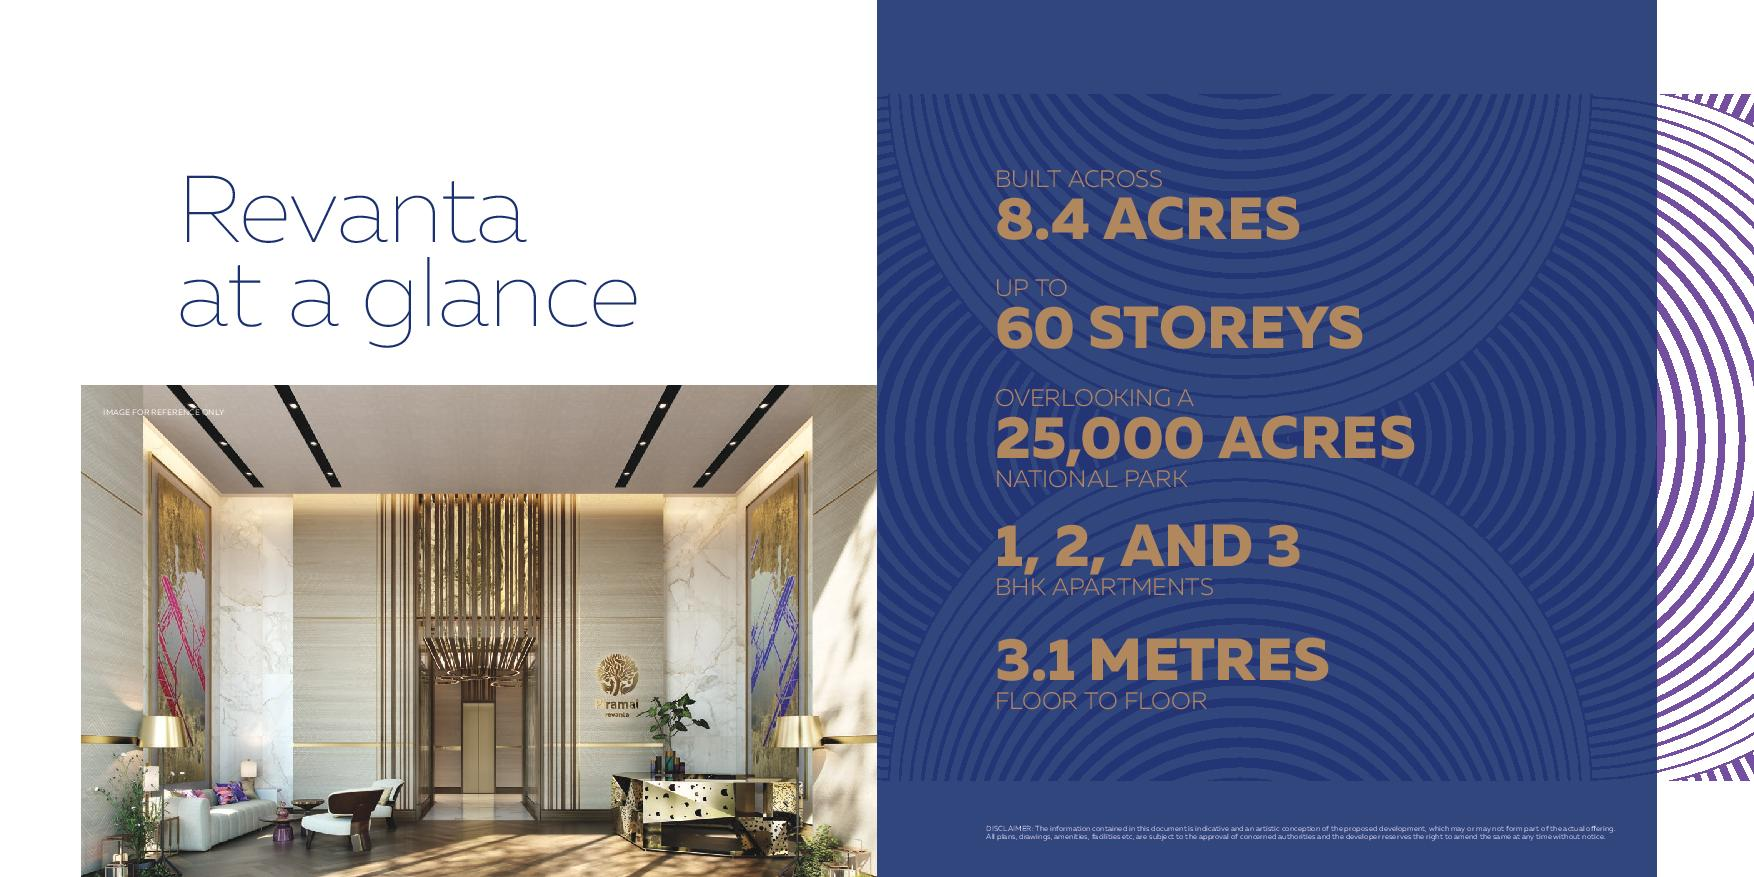 Piramal group piramal realty Revanta at a glance revamta